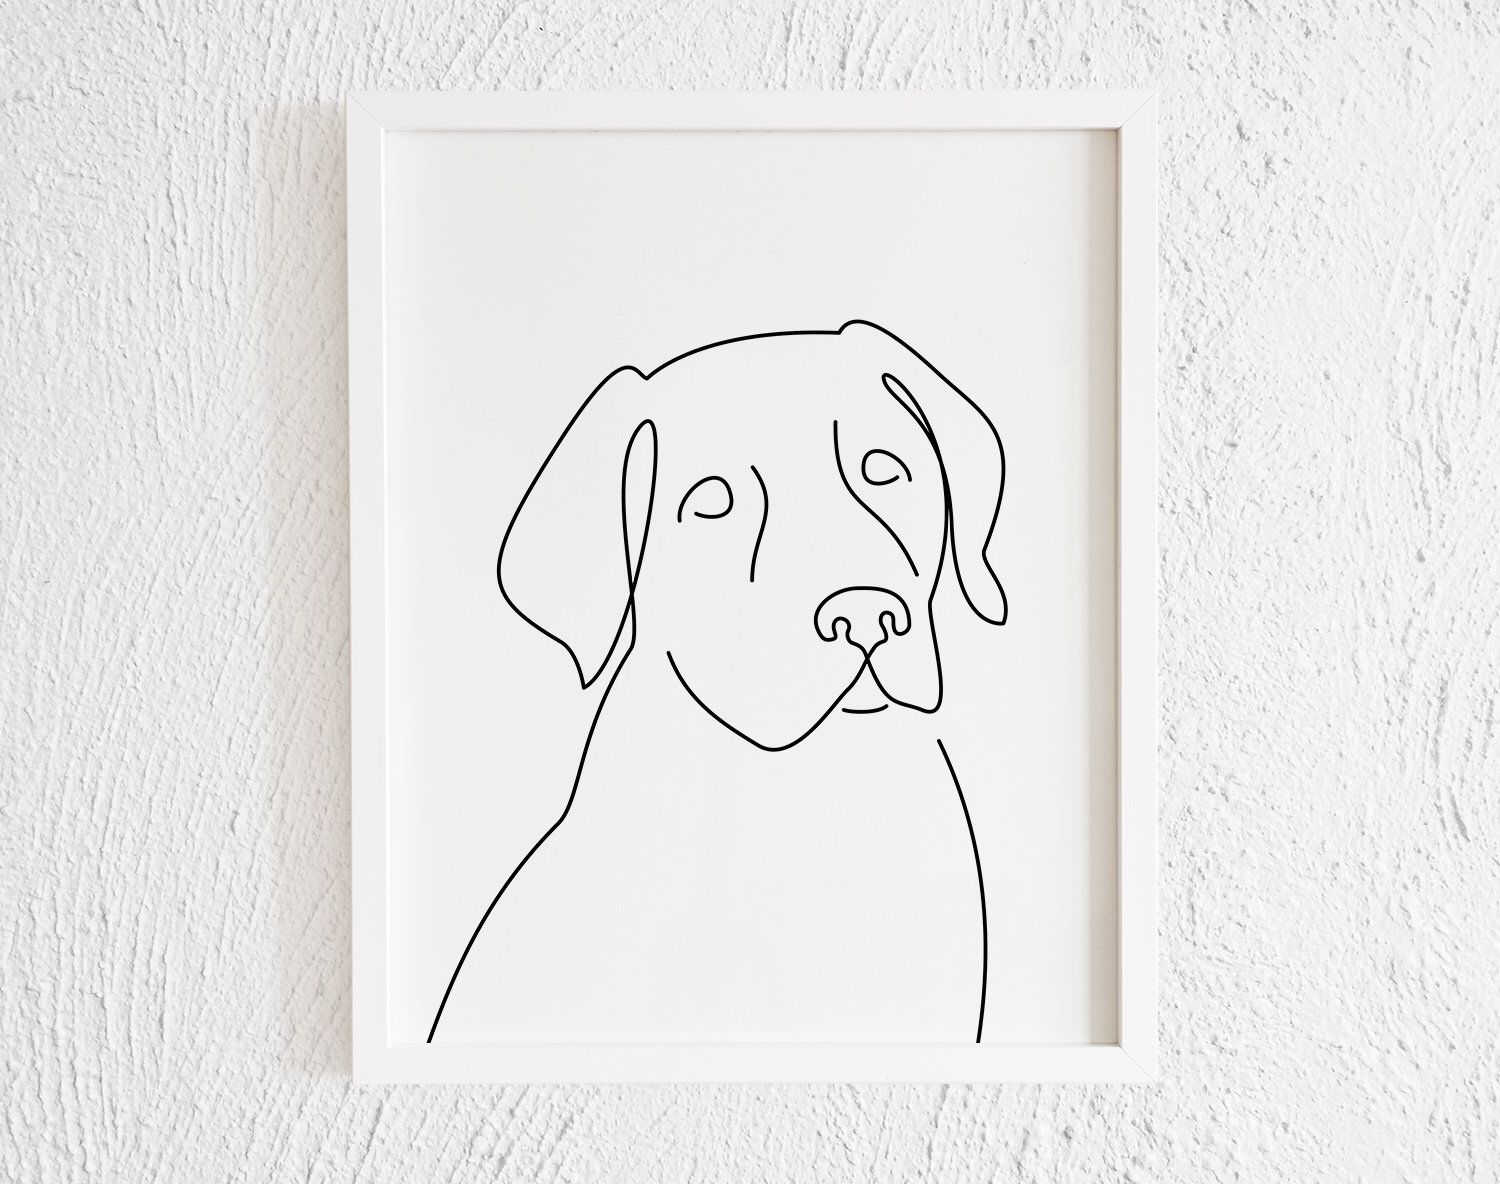 Photo of Labrador Retriever One line Drawing Print. Printable Black and White Modern Lab Doodle Wall Decor. Minimalist Dog Face Art Illustration